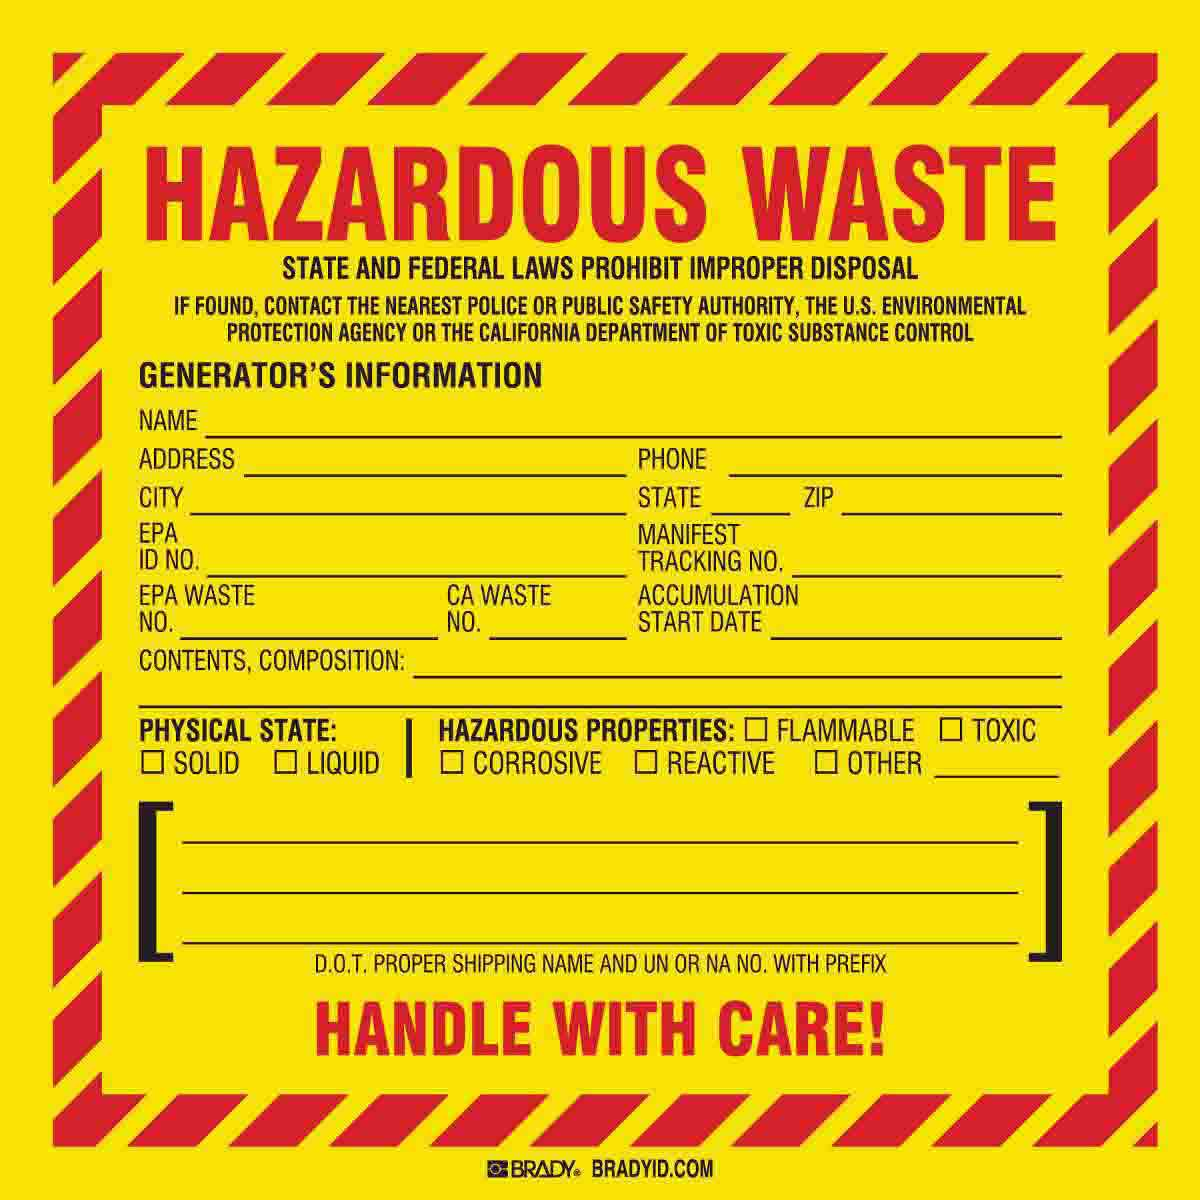 Brady Part 121152 Hazardous Waste Federal And Or State